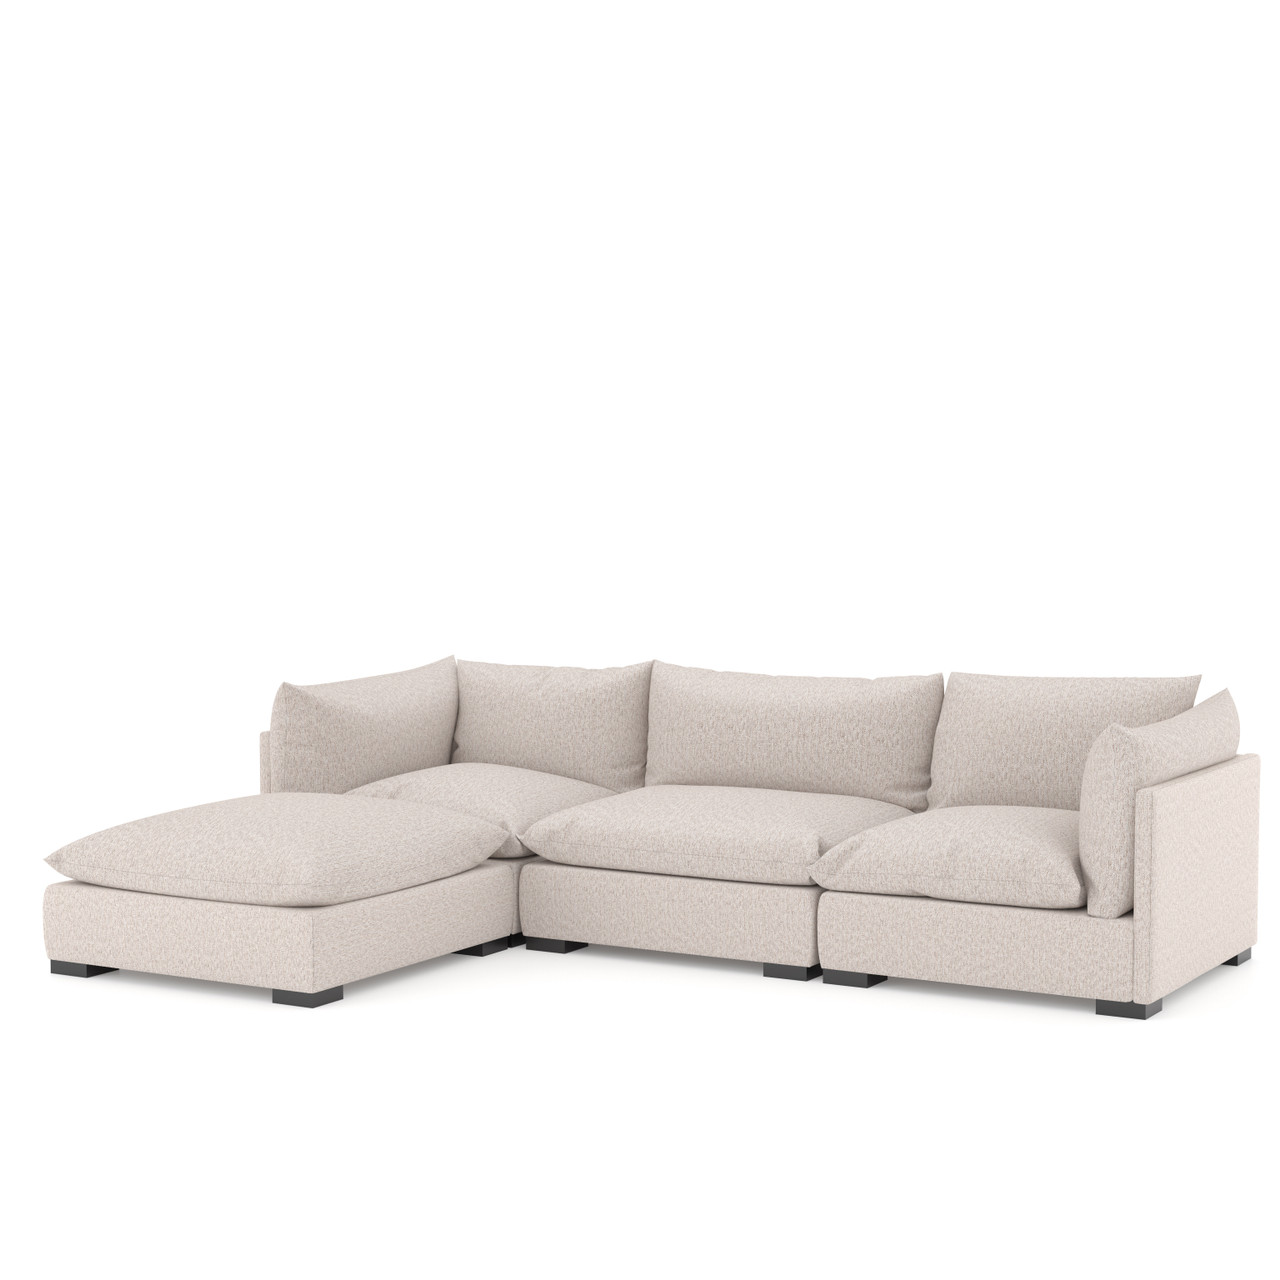 Zoe 3 PC Sectional W/ Ottoman-Bayside Pebble